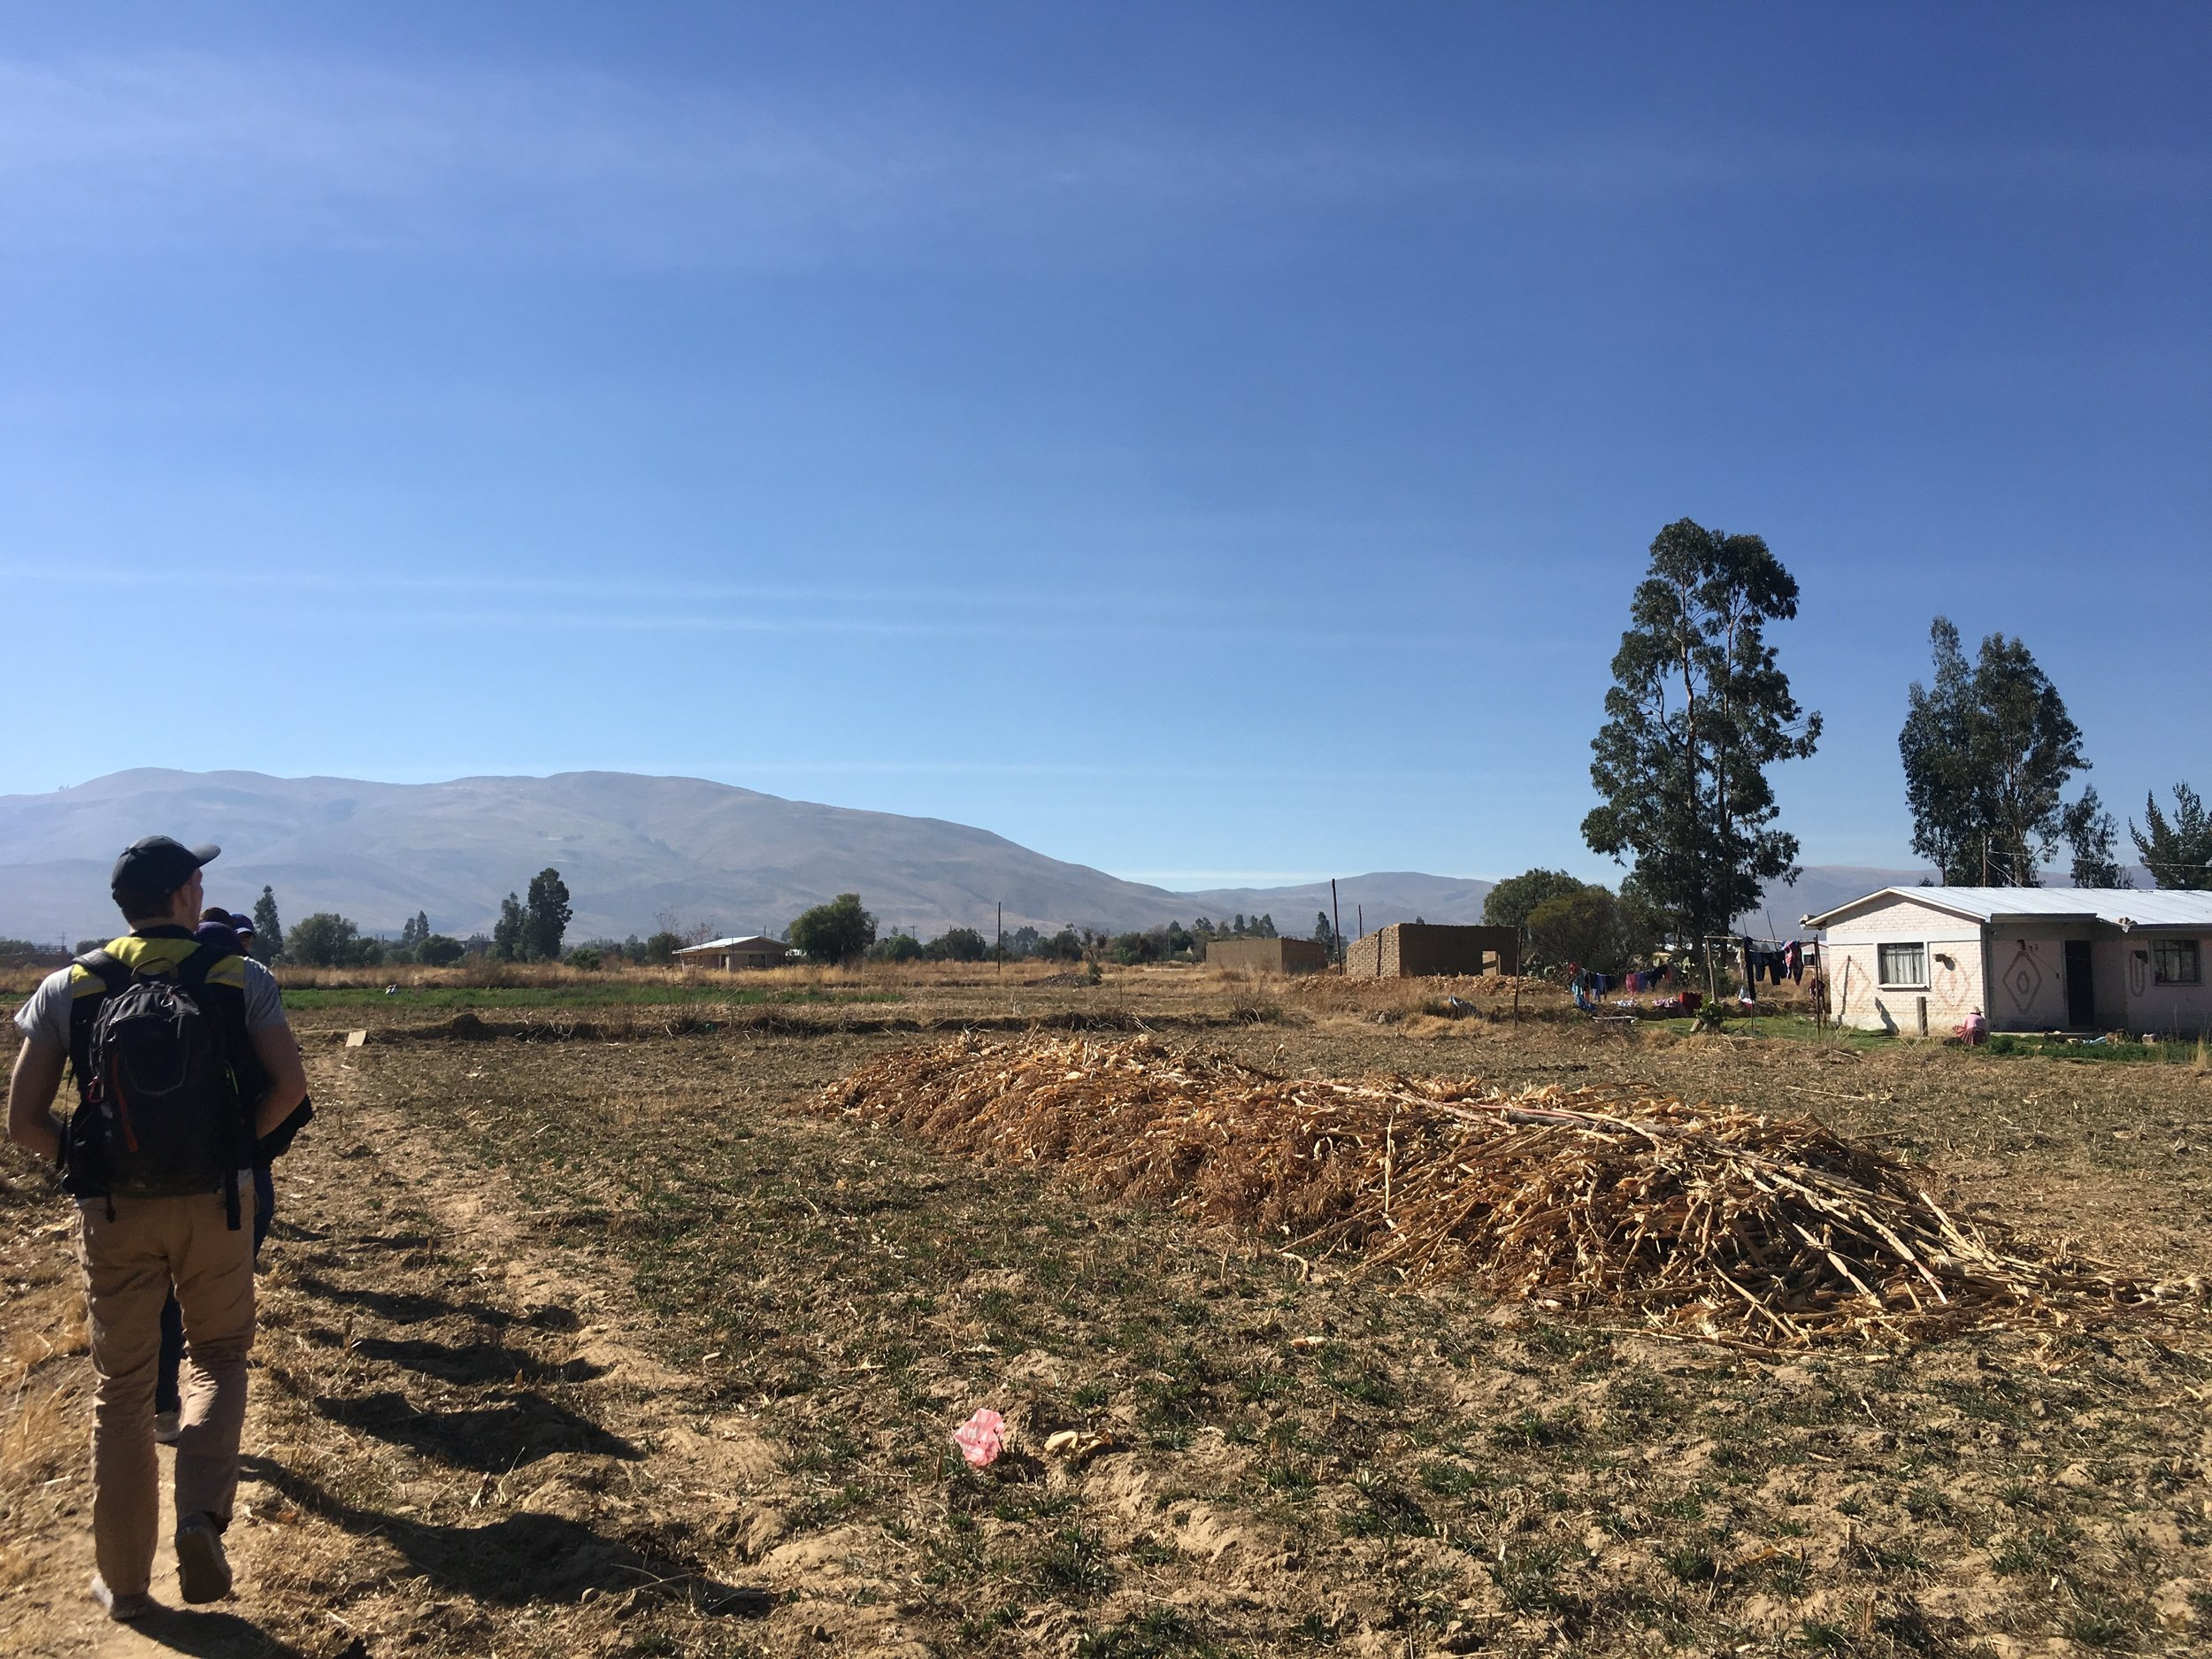 One of my team members, Riley, walking through the campo of Punata .